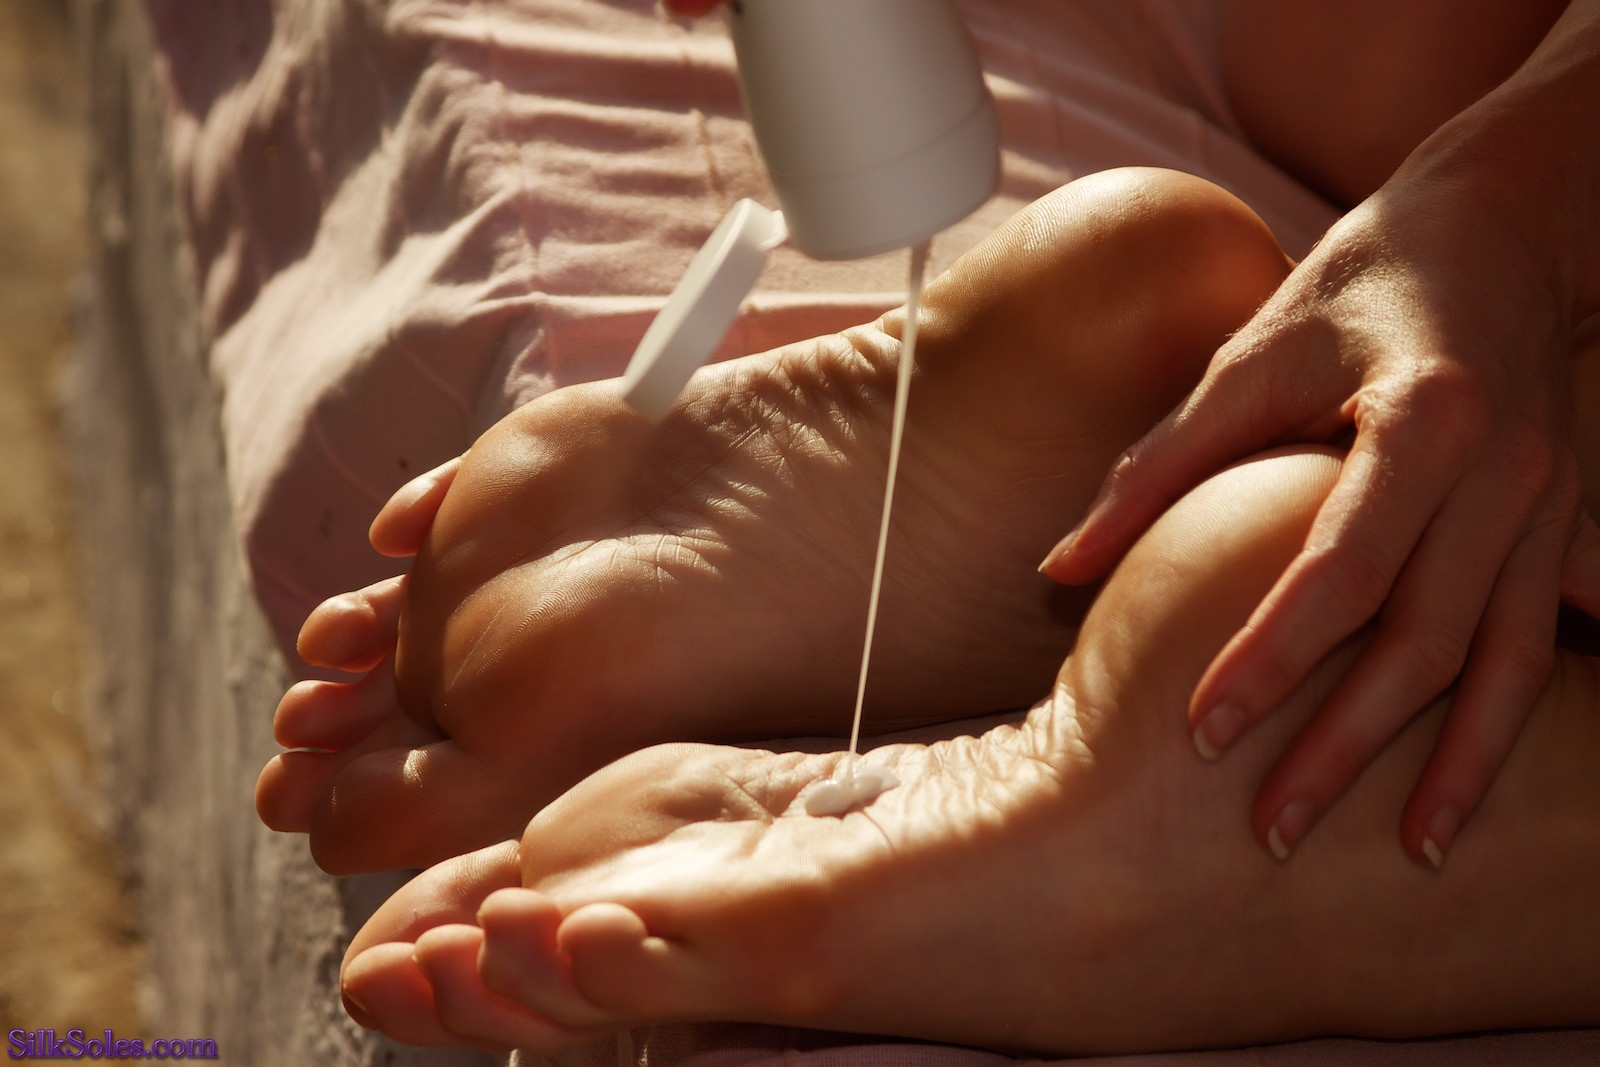 Ahhh, suncream on sexy soles. So much more suggestive than actual foot jobs!